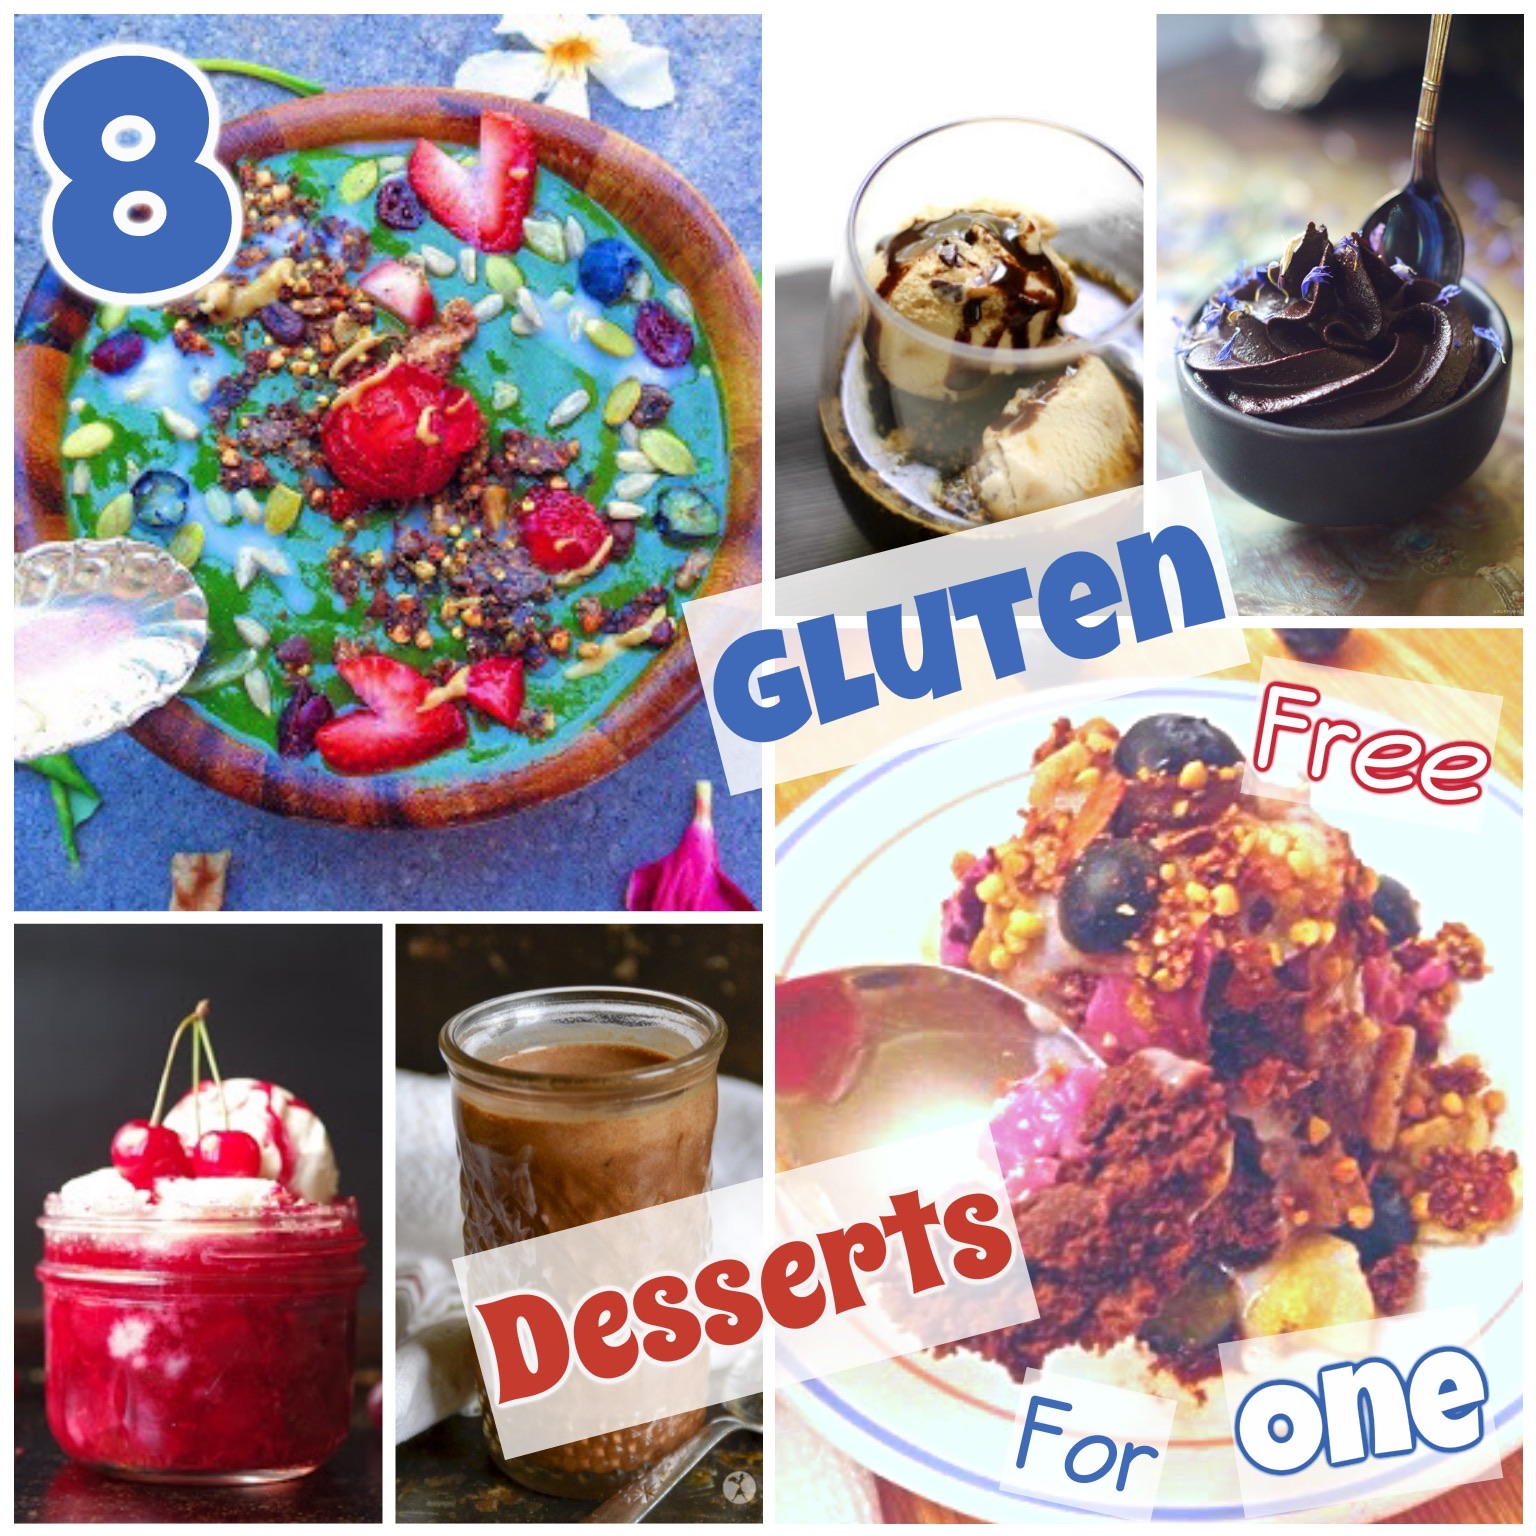 8 Gluten Free Desserts For One To Celebrate Single